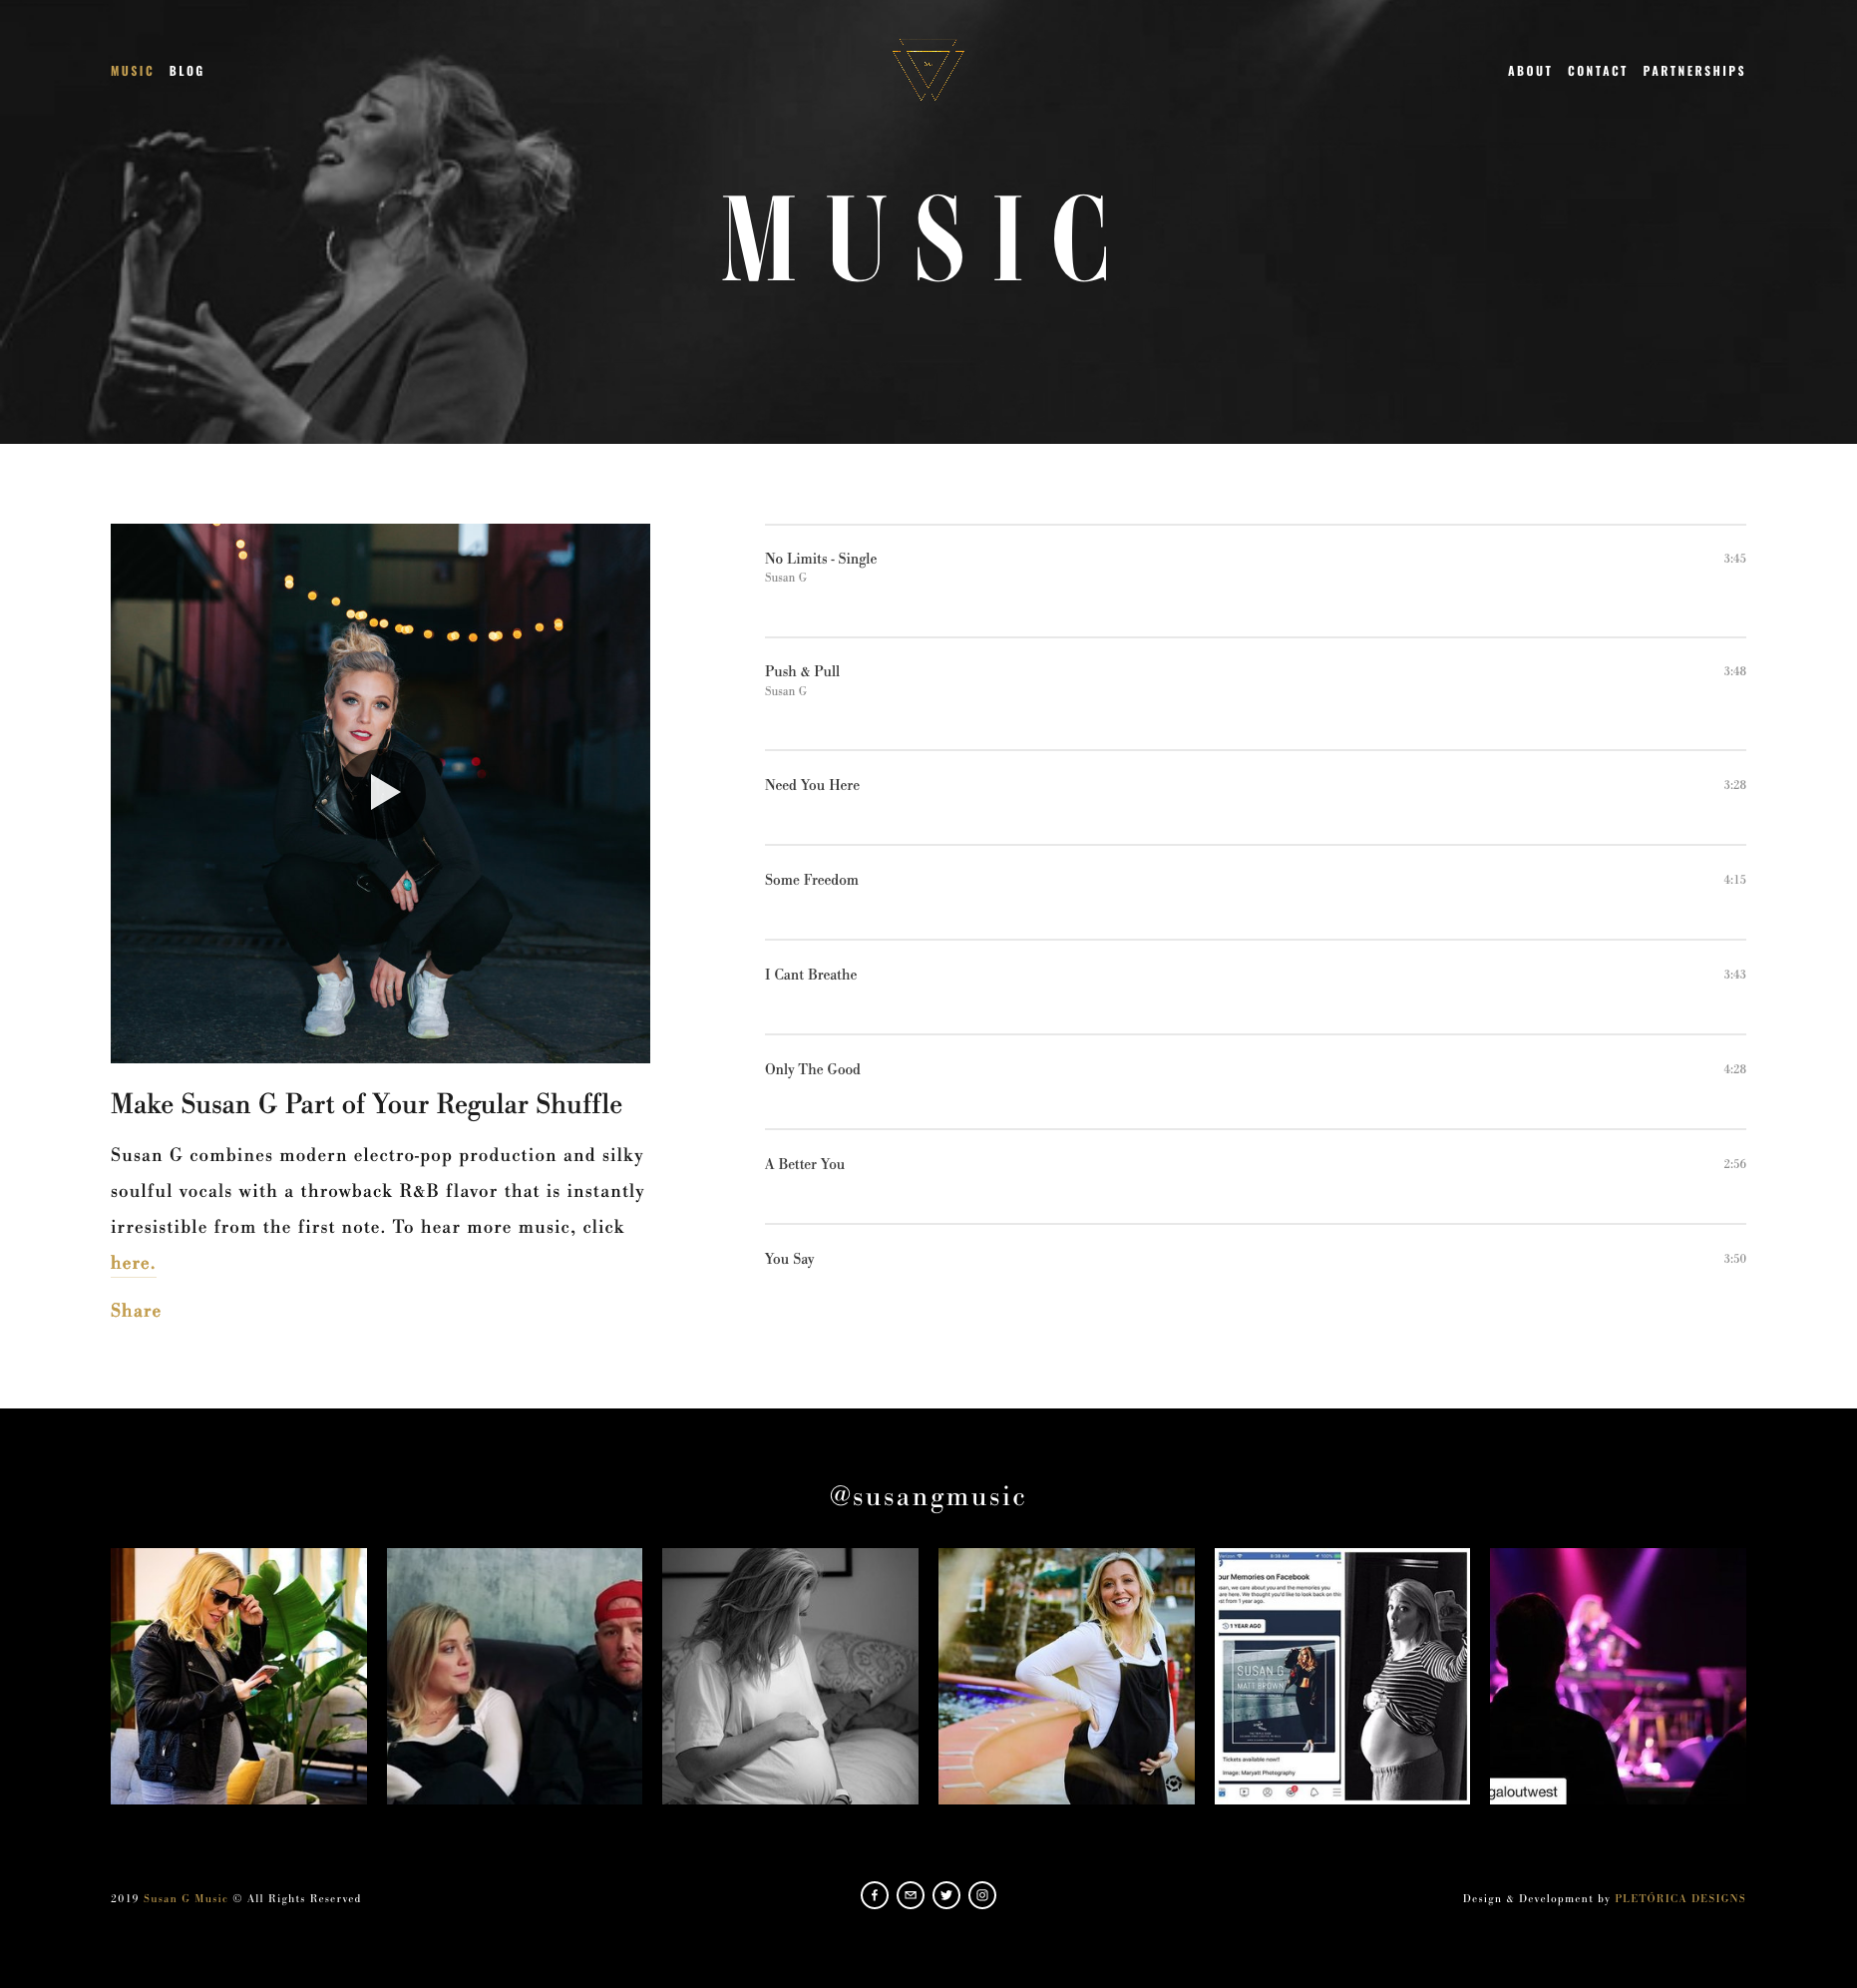 Screenshot_2019-03-17 Music — Singer Songwriter Influencer.png